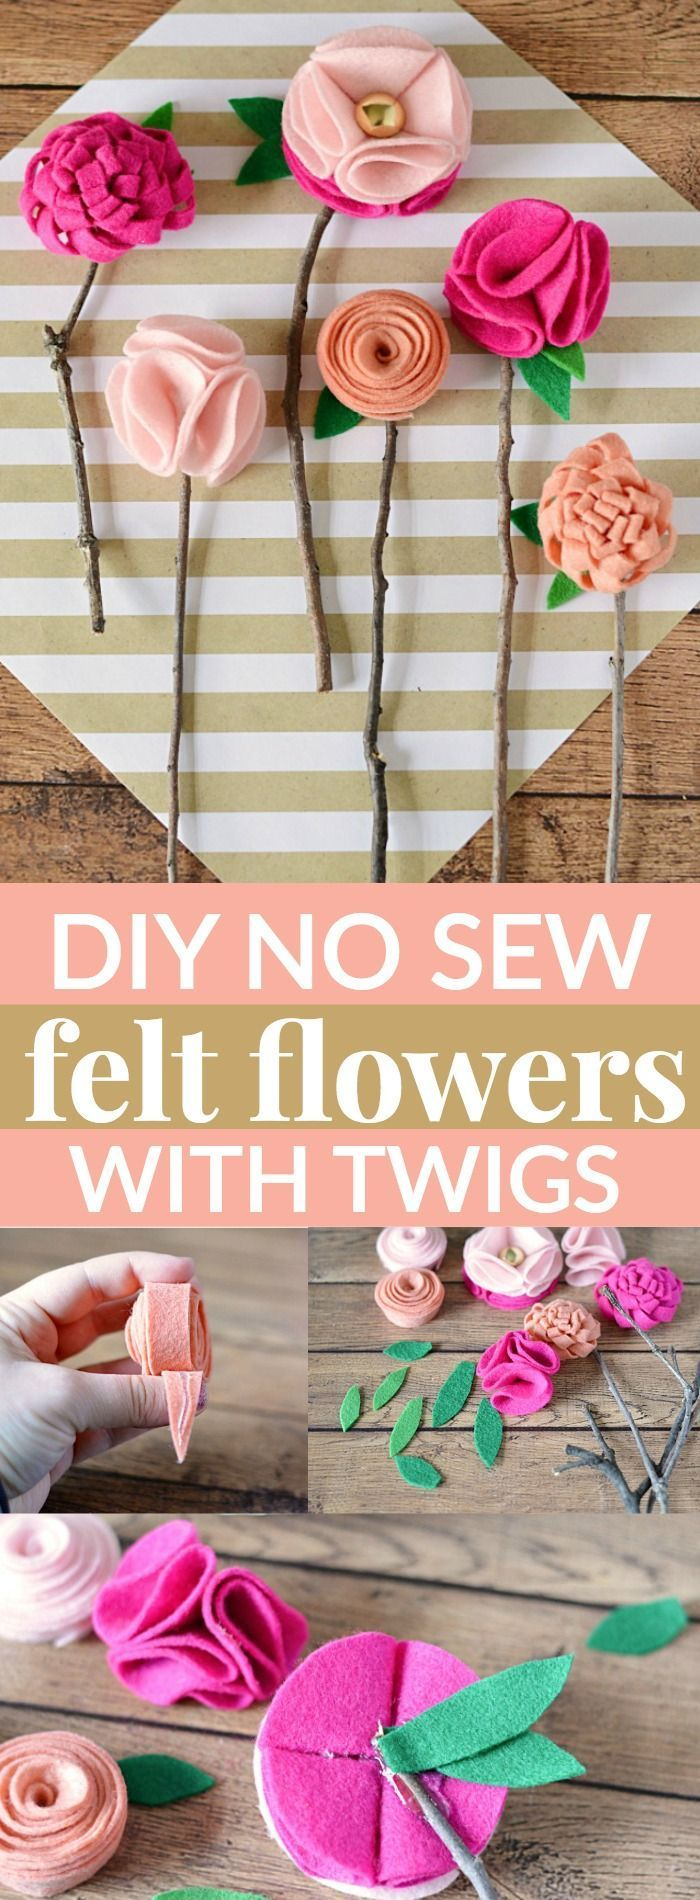 make your own beautiful felt flowers with no sewing needed. They look so beautiful on the twigs. A fun DIY project.